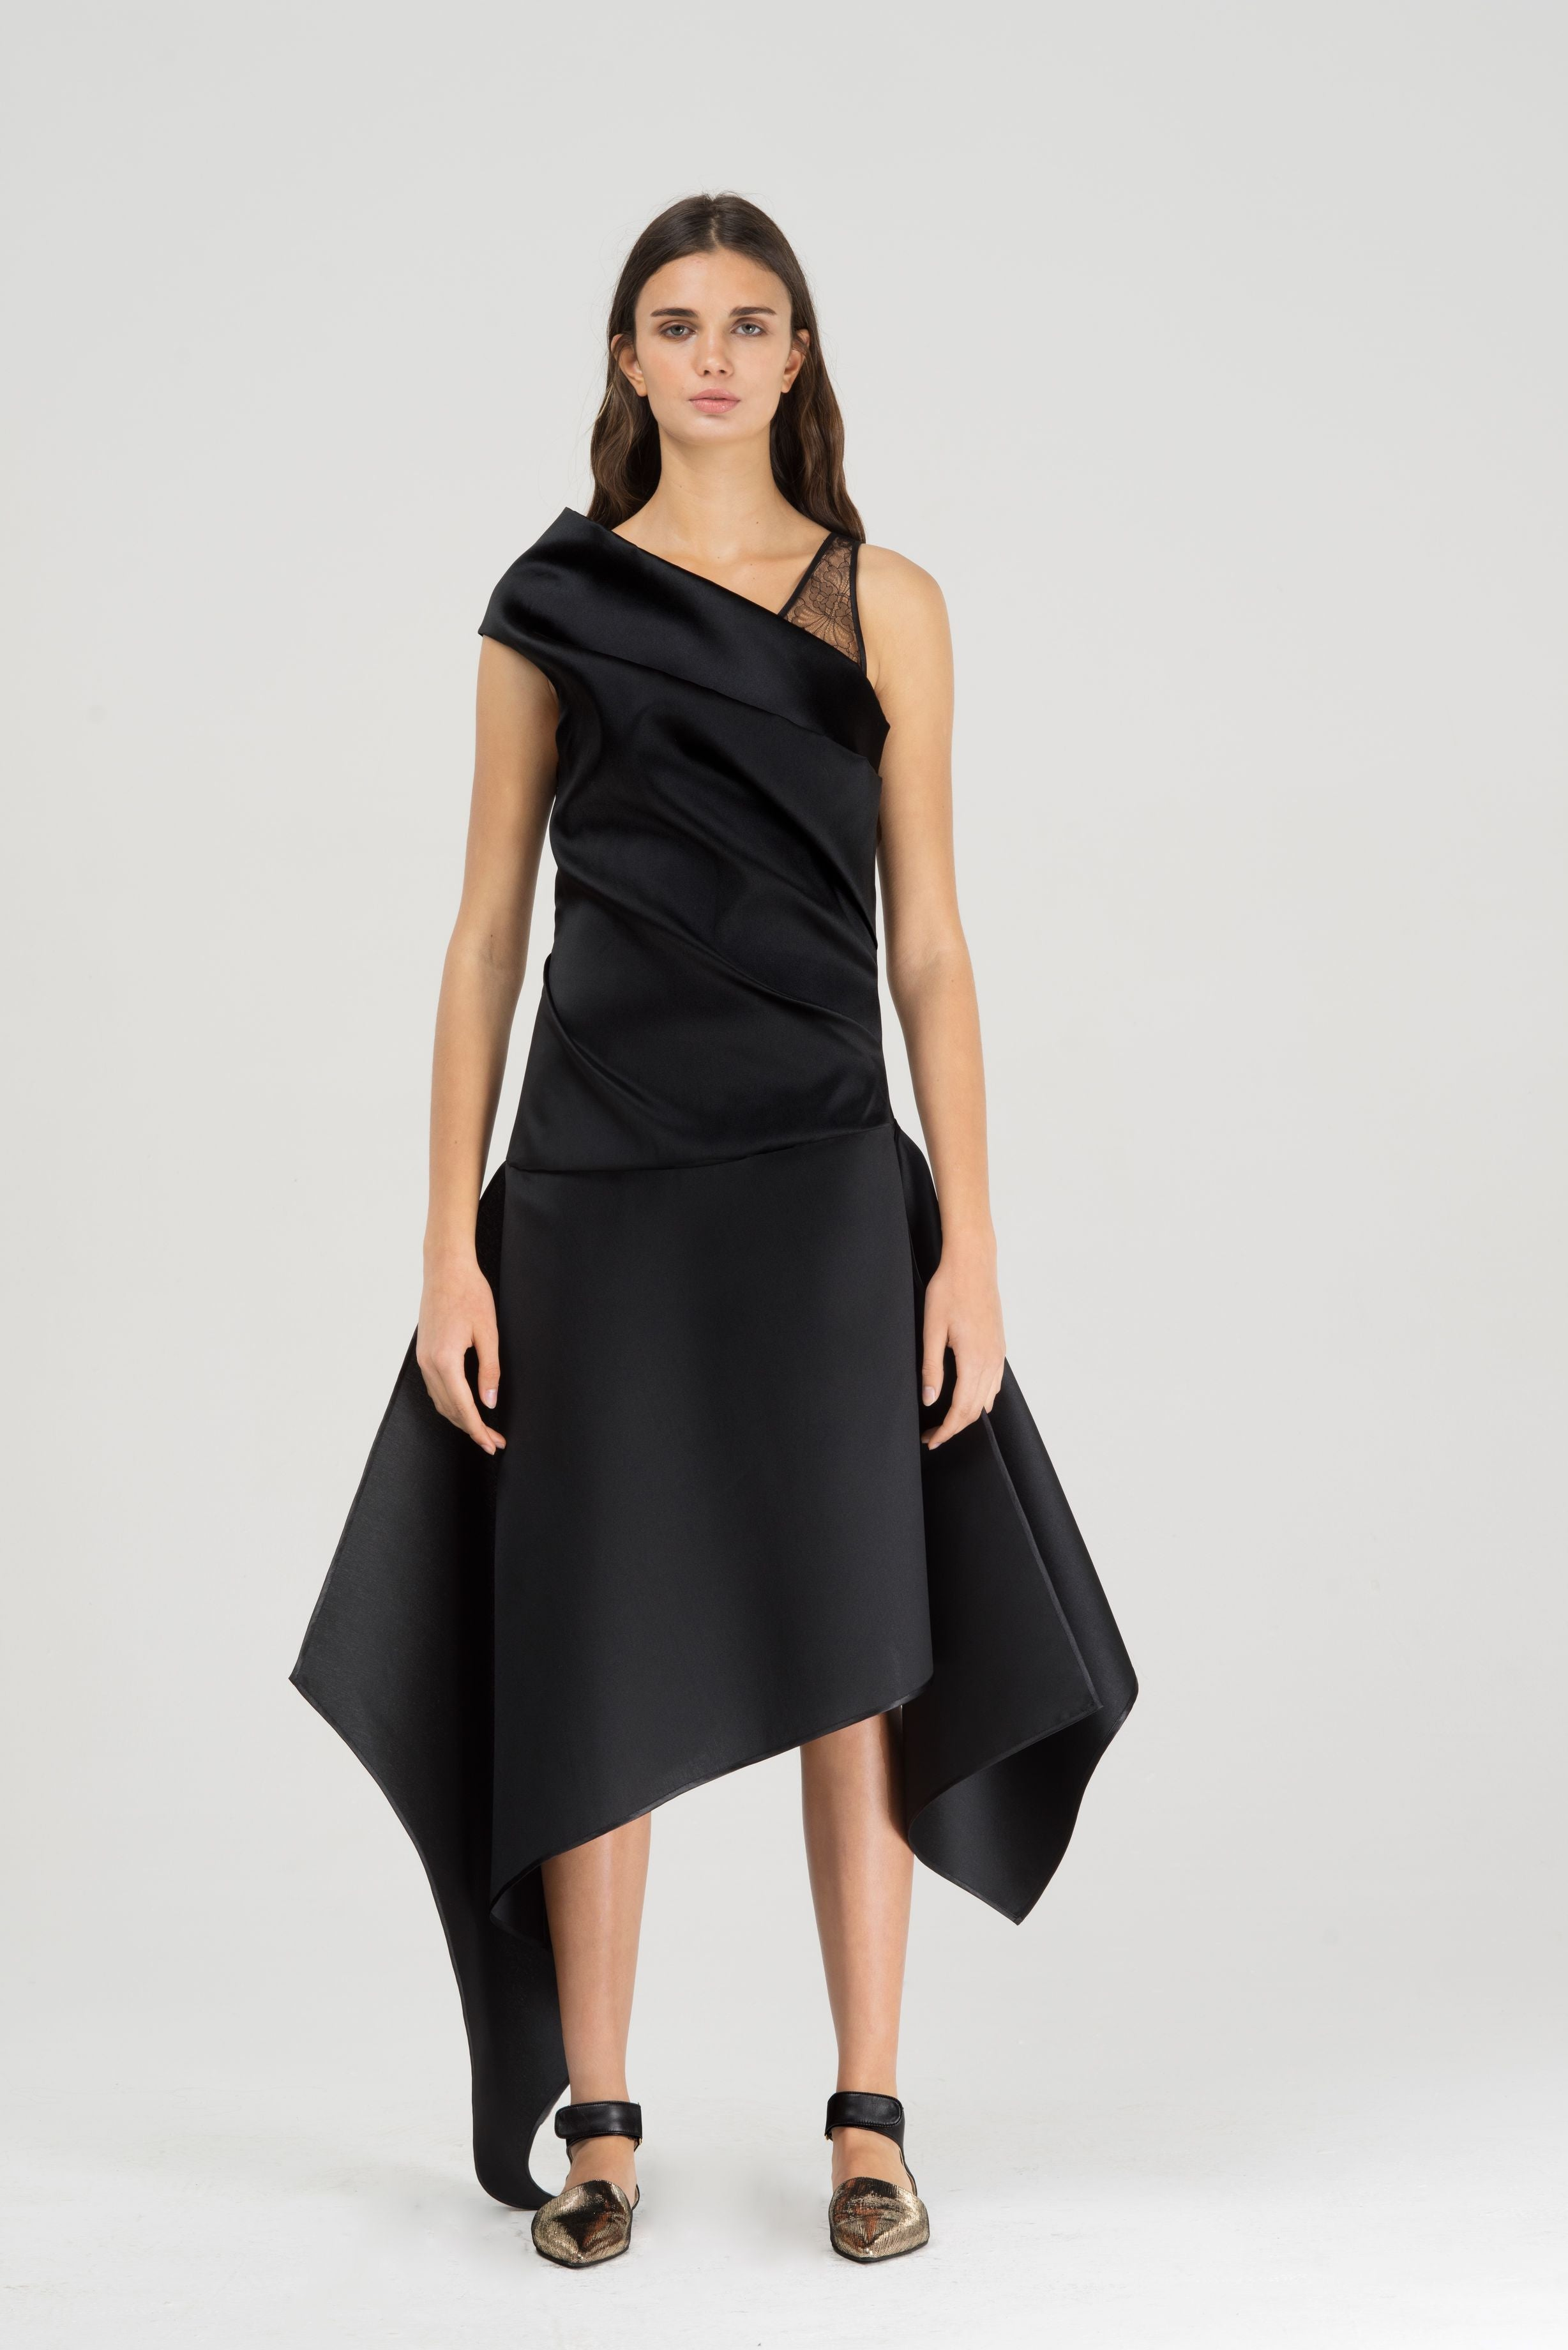 Assymetric cocktail dress with lace detail